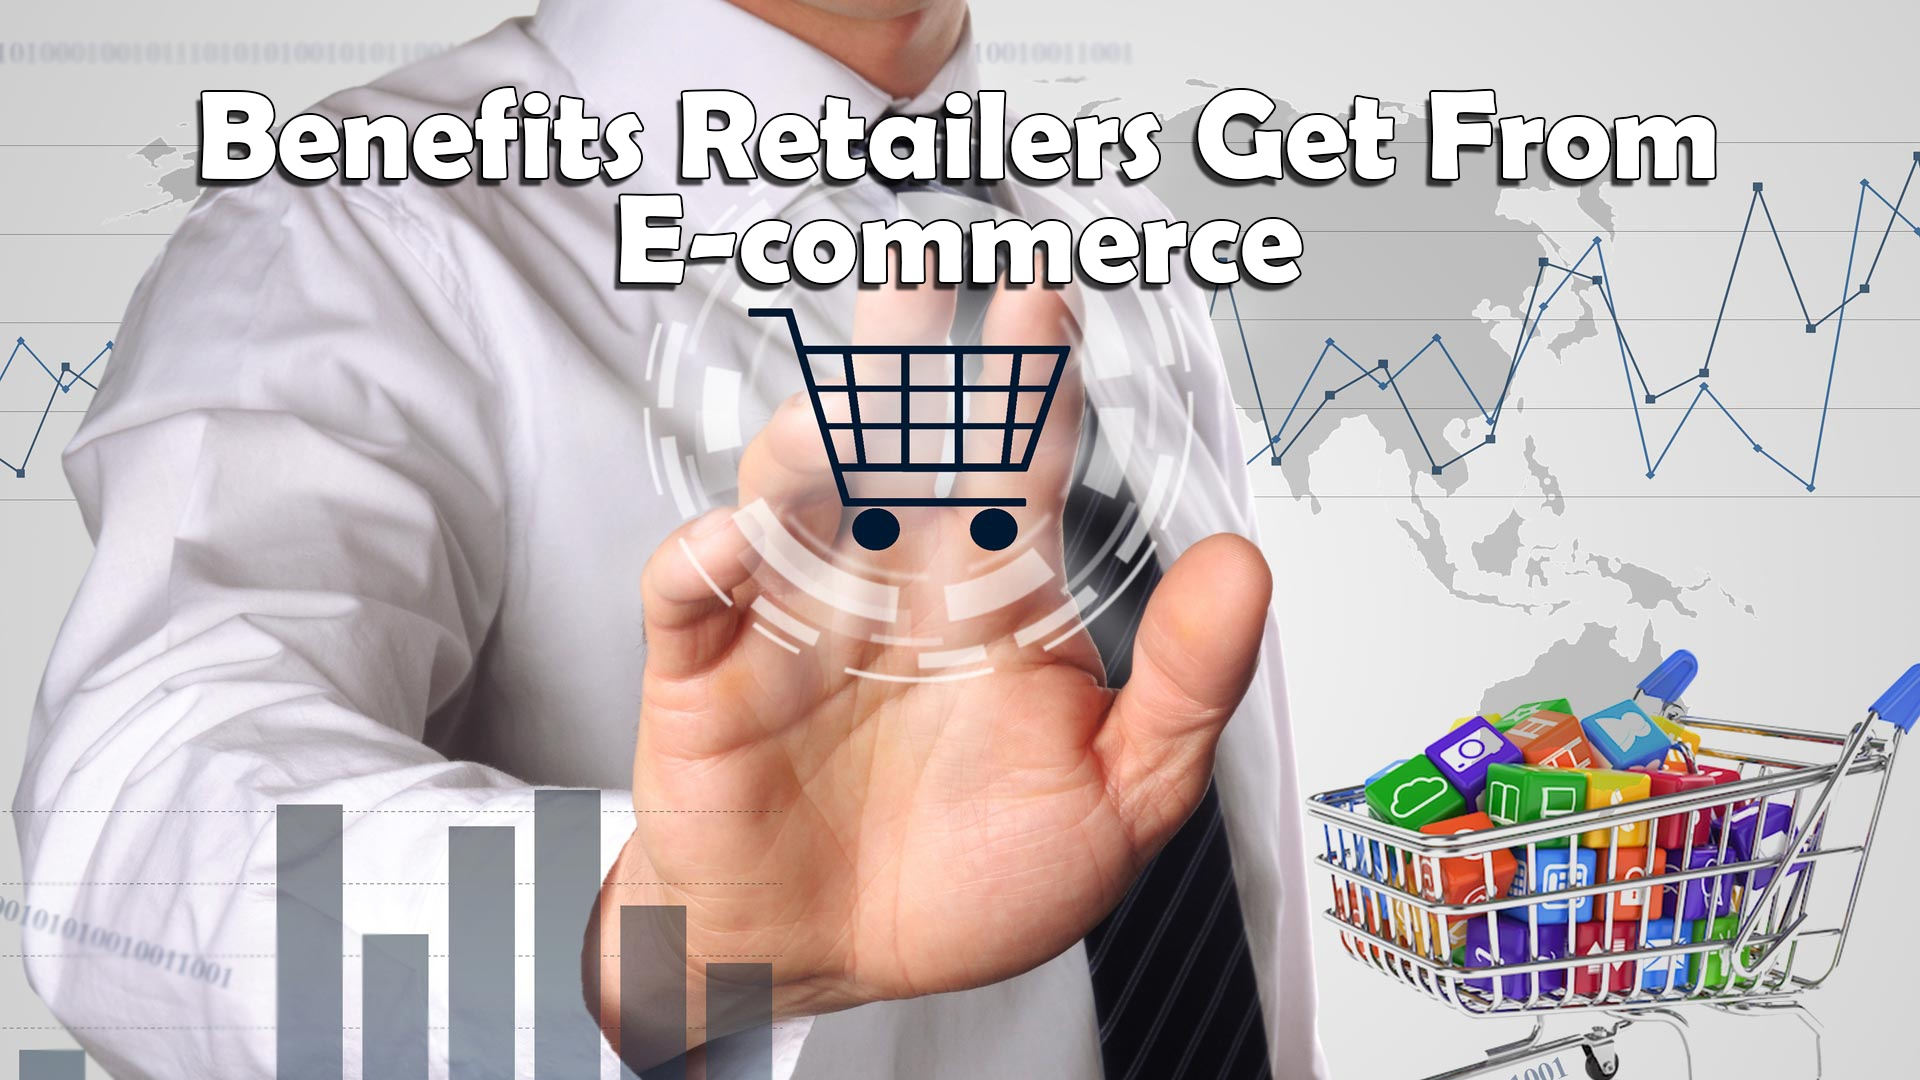 Benefits Retailers Get From E-commerce